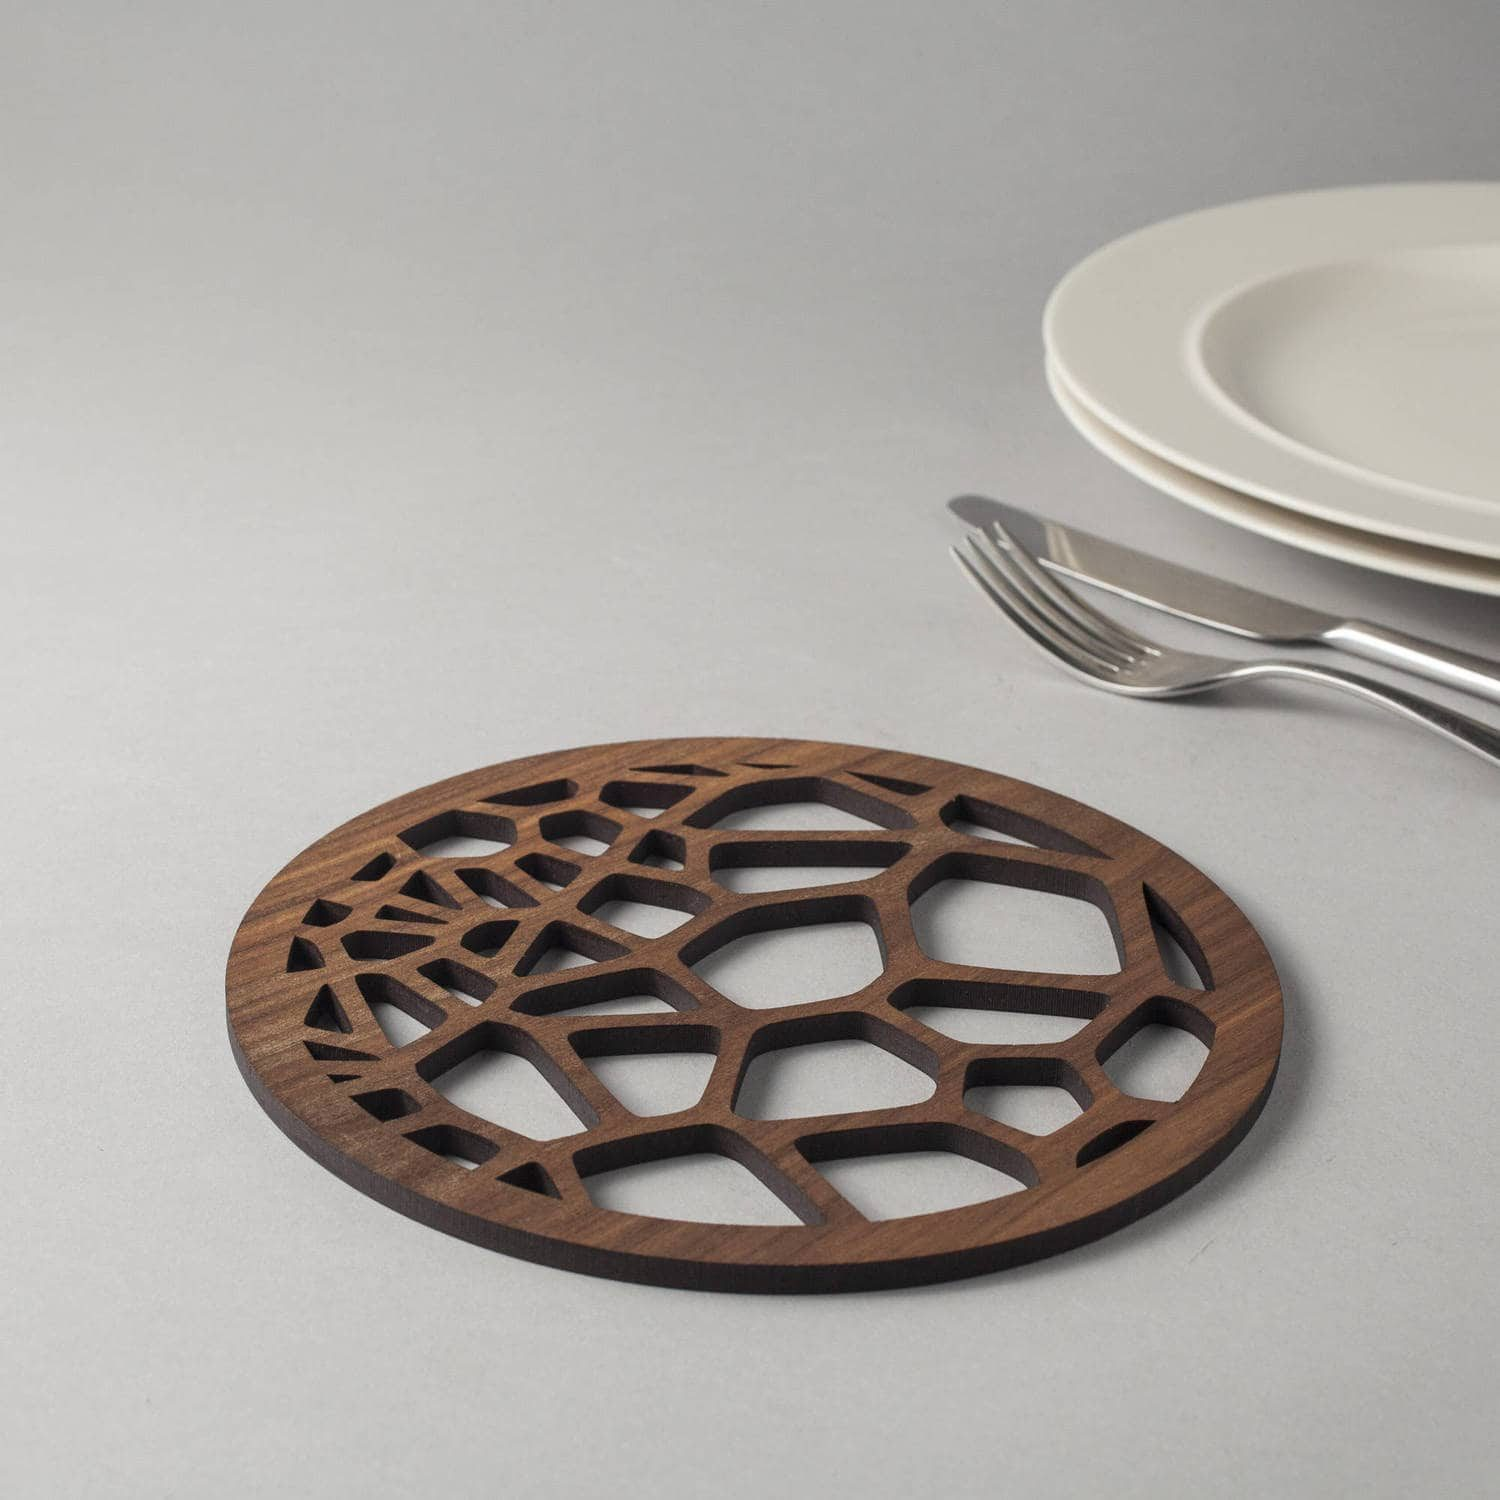 Voronoi cell pattern coasters in genuine walnut, geometry, cells